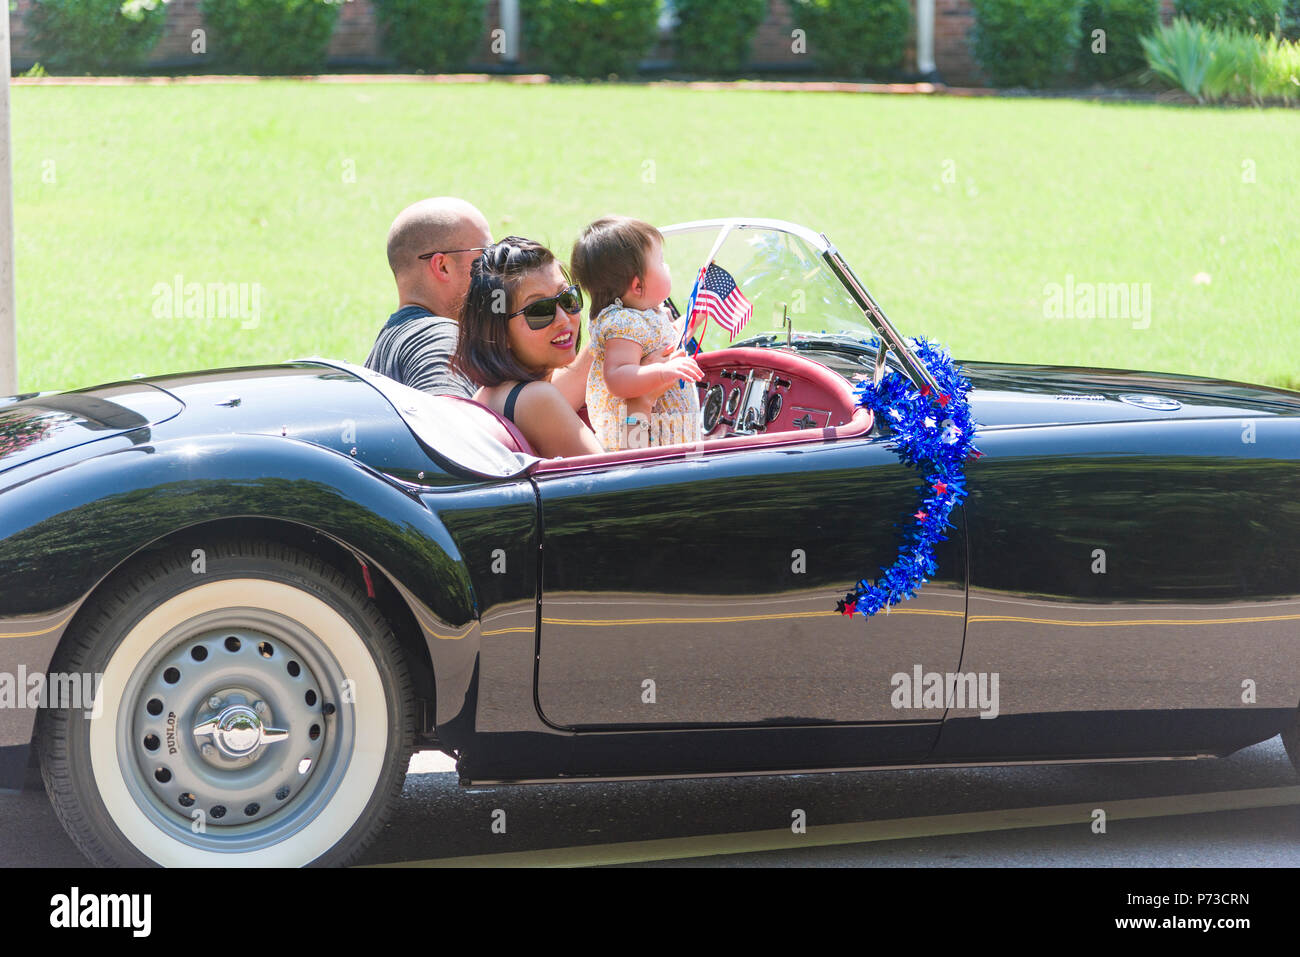 Germmantown, USA. July 4,2018. Germmantown, TN USA.  Neighborhood Parade.   2018. Enjoying the Fourth of July.  Independence Day USA. Families and friends enjoy the celebration with the colors, convertibles and cool breezes.  Temp in the nineties (35c) Credit: Gary Culley/Alamy Live News - Stock Image